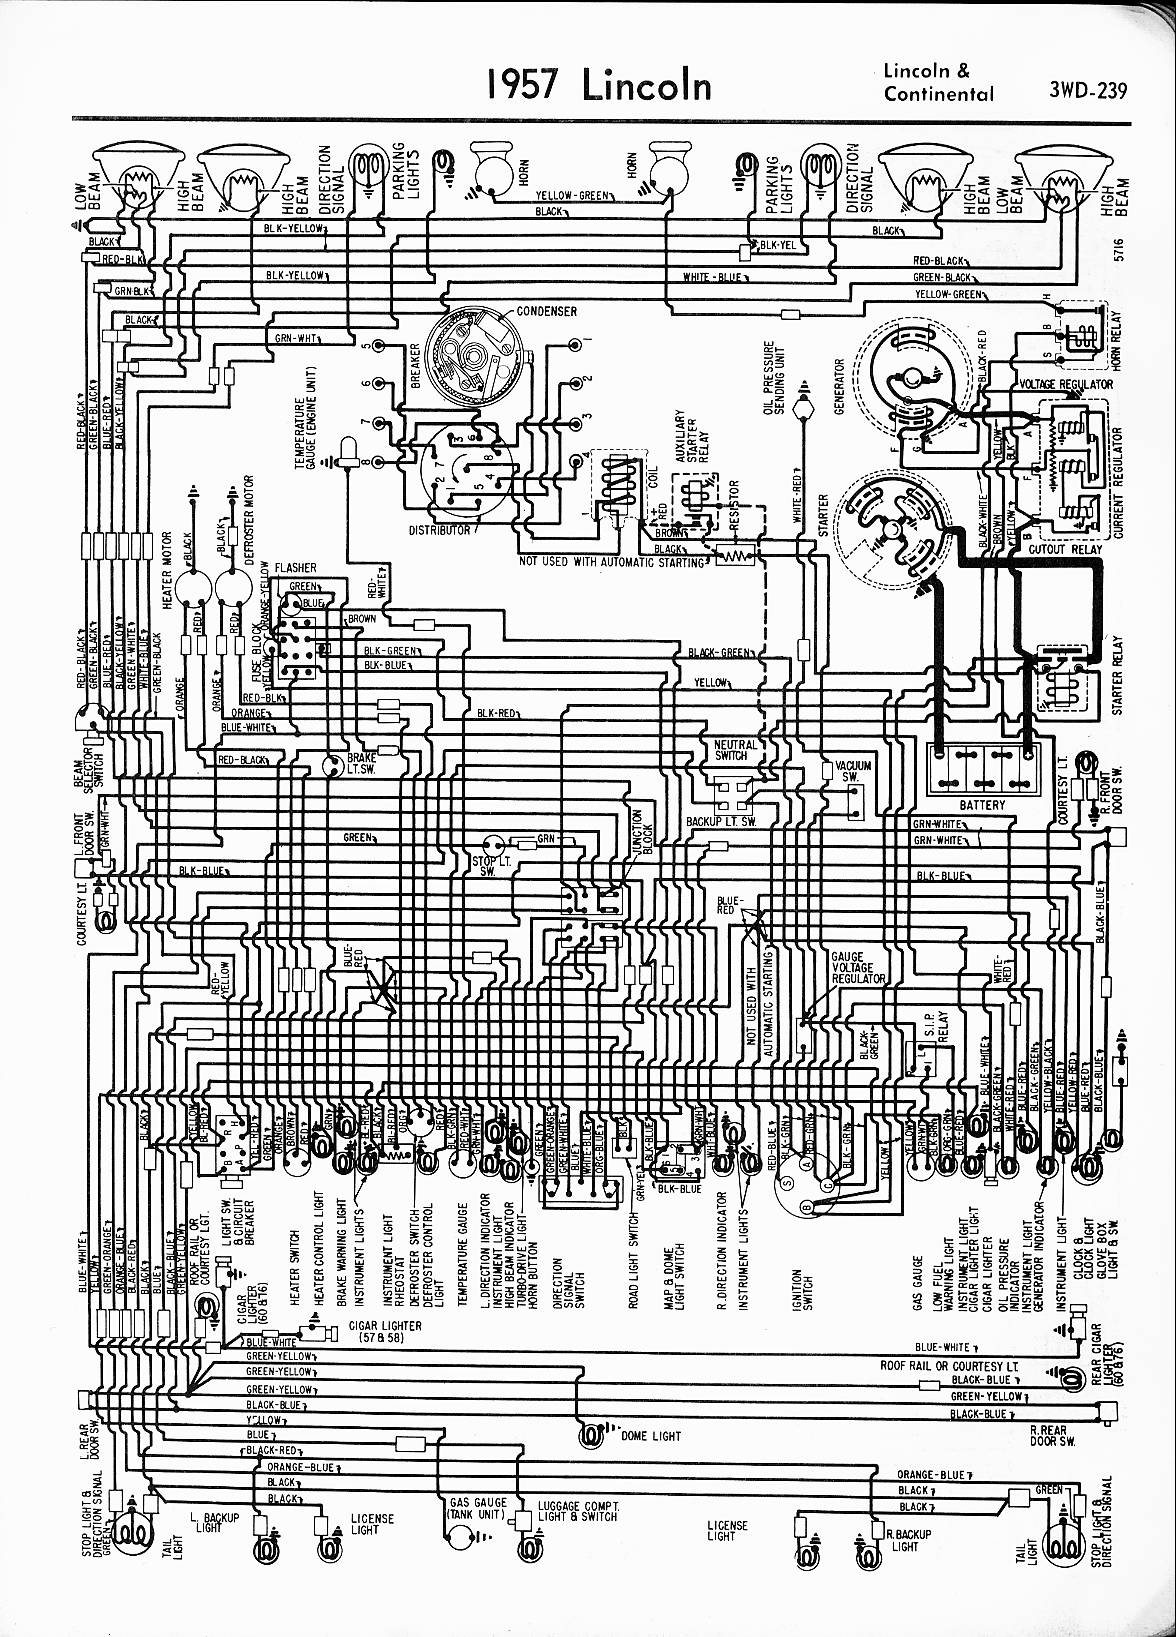 1966 Ford Thunderbird Wiring Diagram Auto Diagrams Library 66 1967 Lincoln Continental Trusted Schematics Rh Roadntracks Com